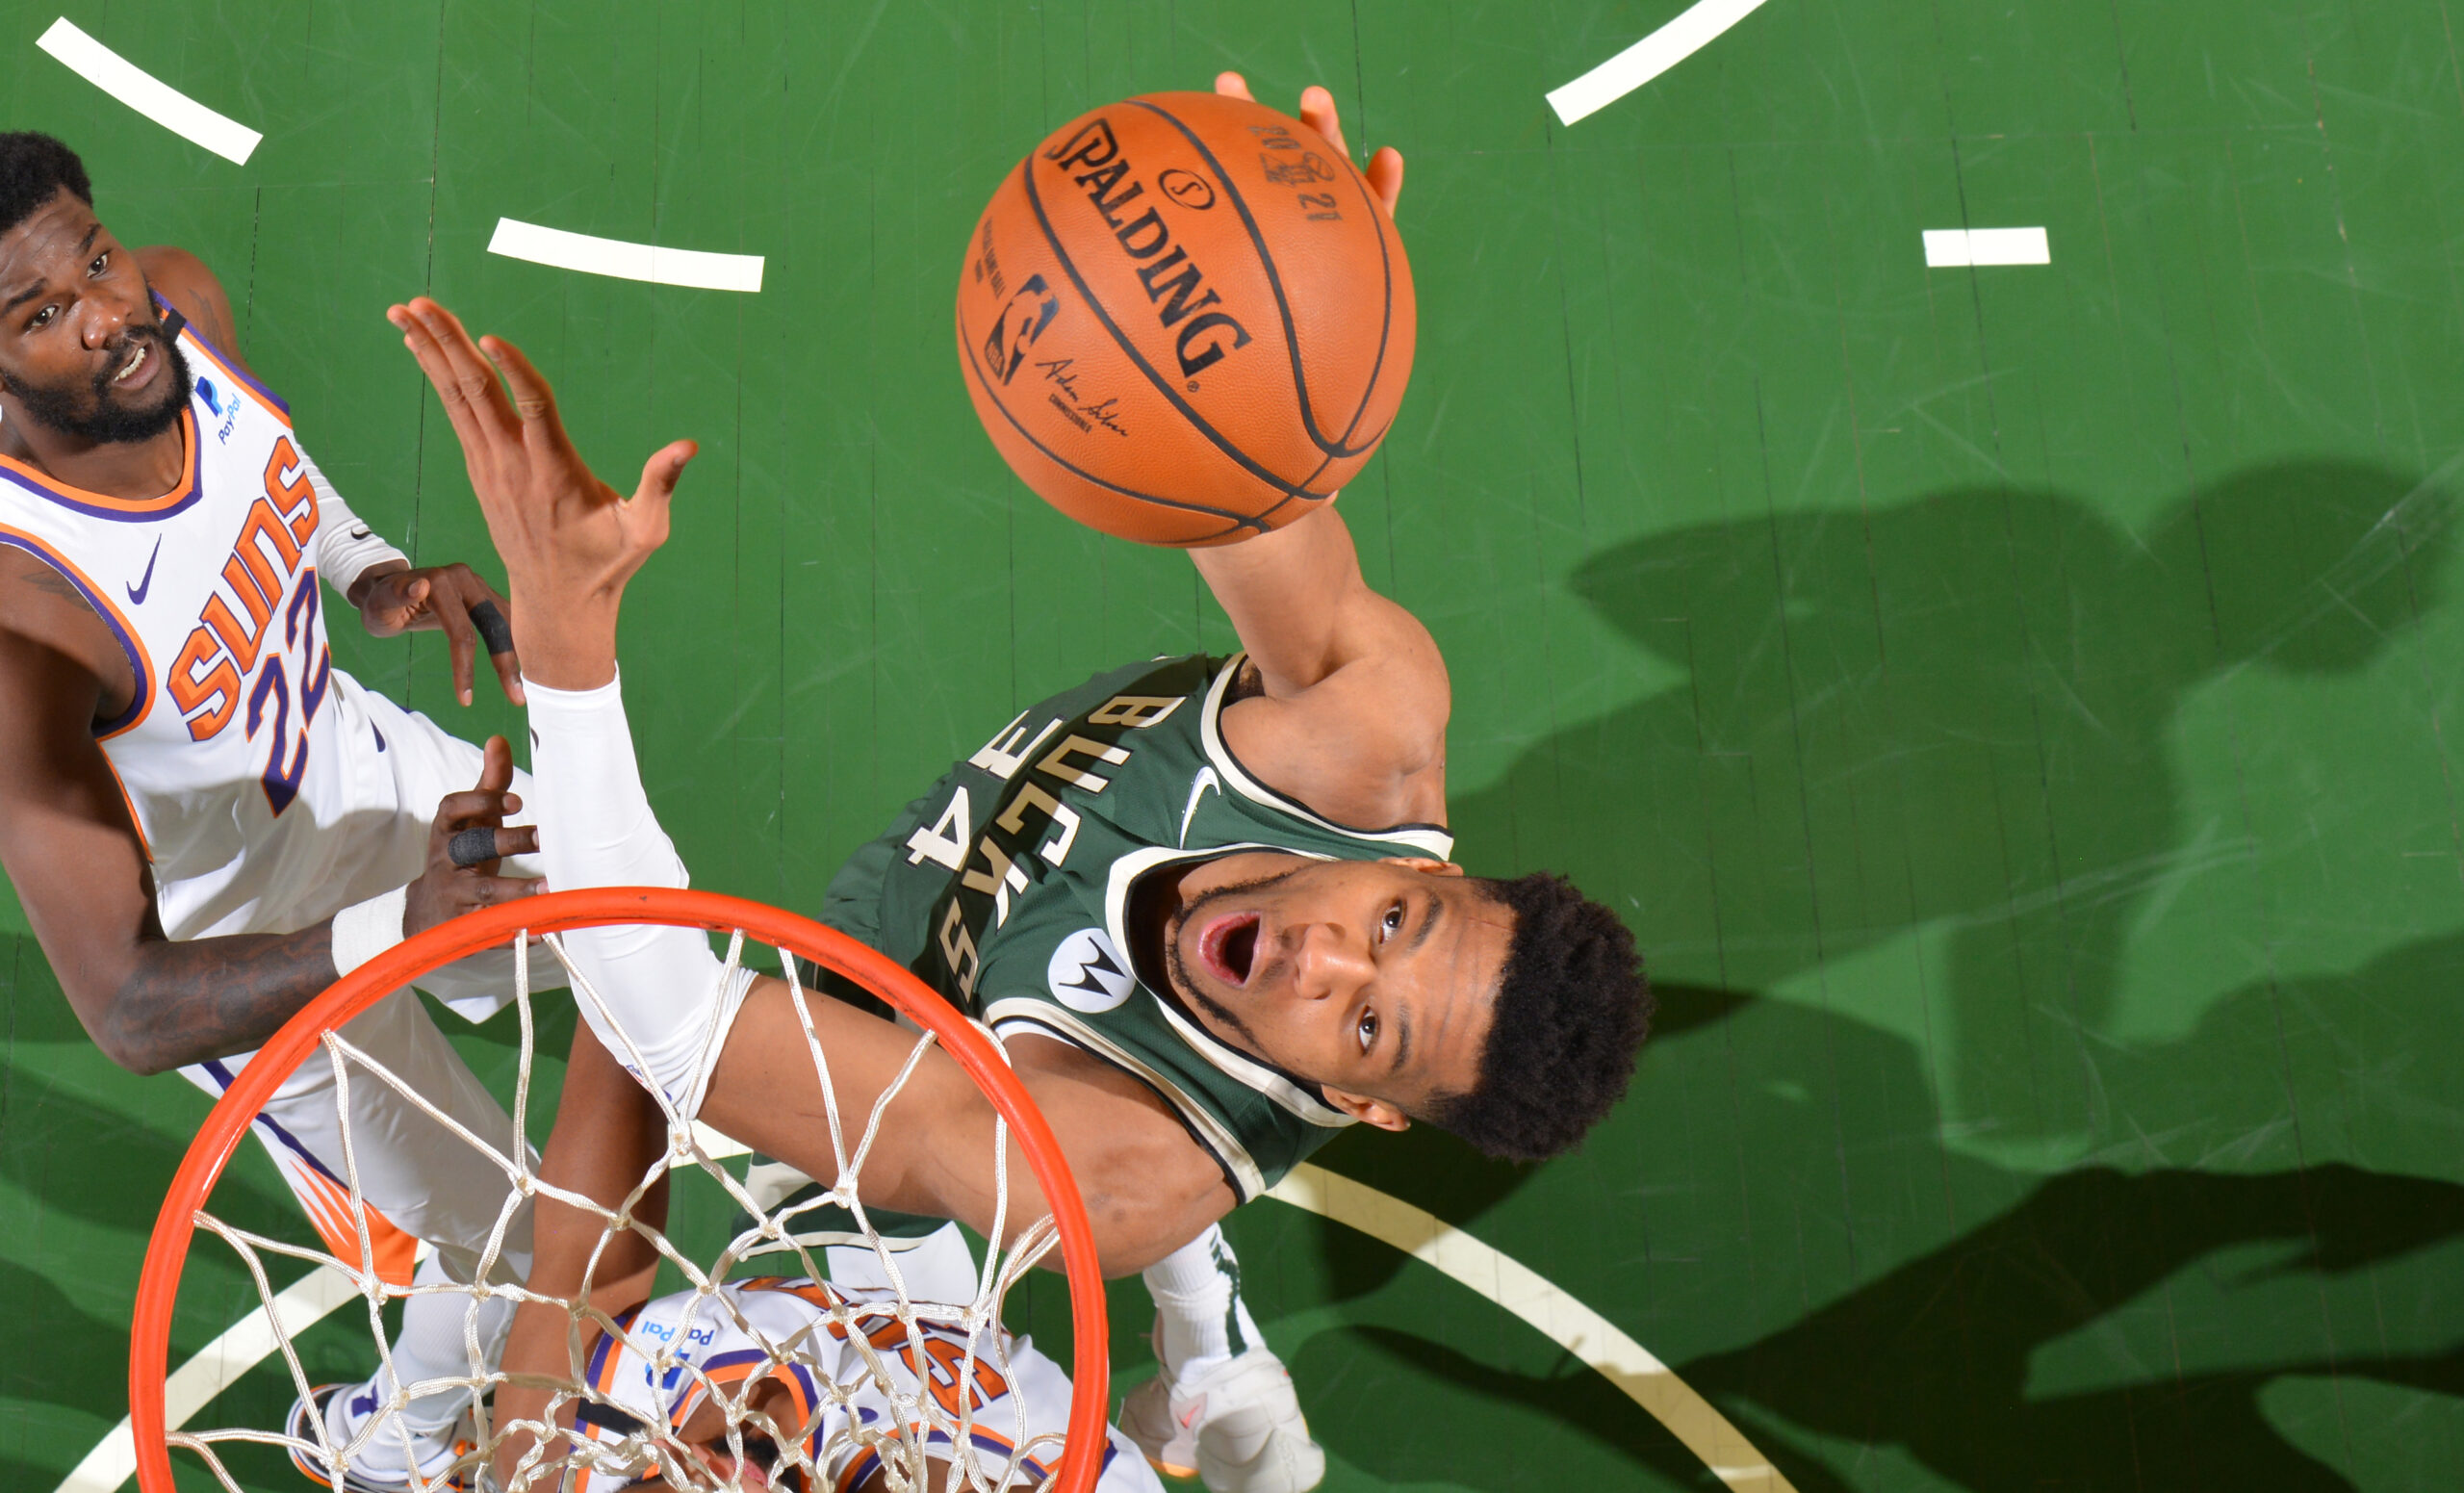 Giannis Antetokounmpo posts back-to-back 40-point, 10-rebound Finals games